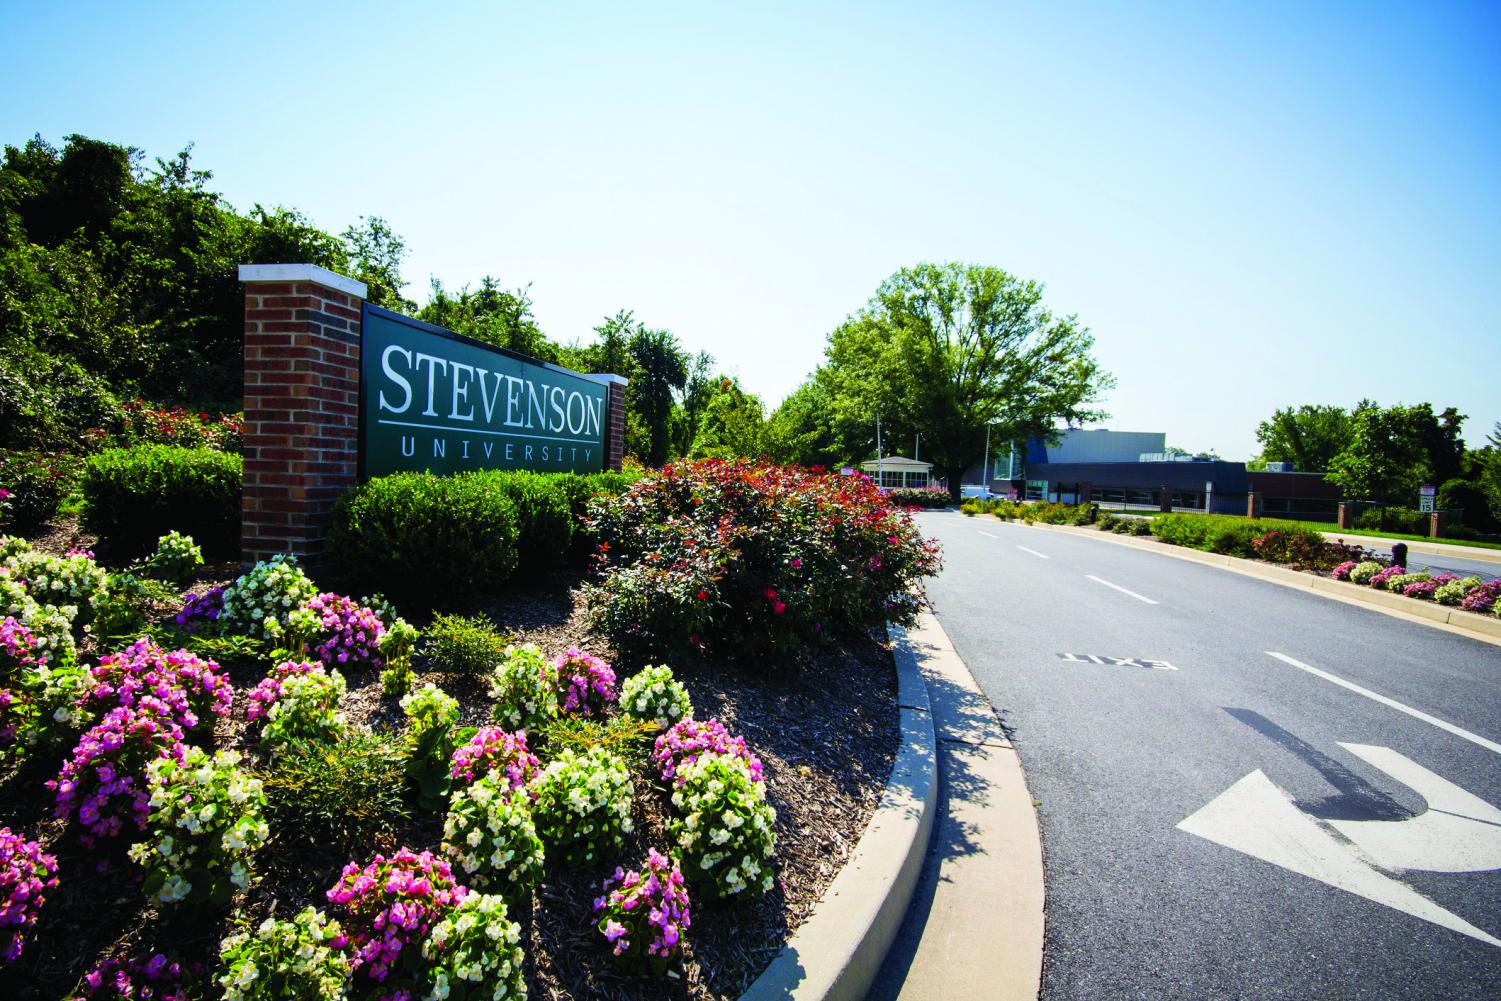 Students from AACC can transfer up to 70 credits from the college to Stevenson University. This is part of an articulation agreement, or course-matching partnership, AACC has with the university's business administration program.